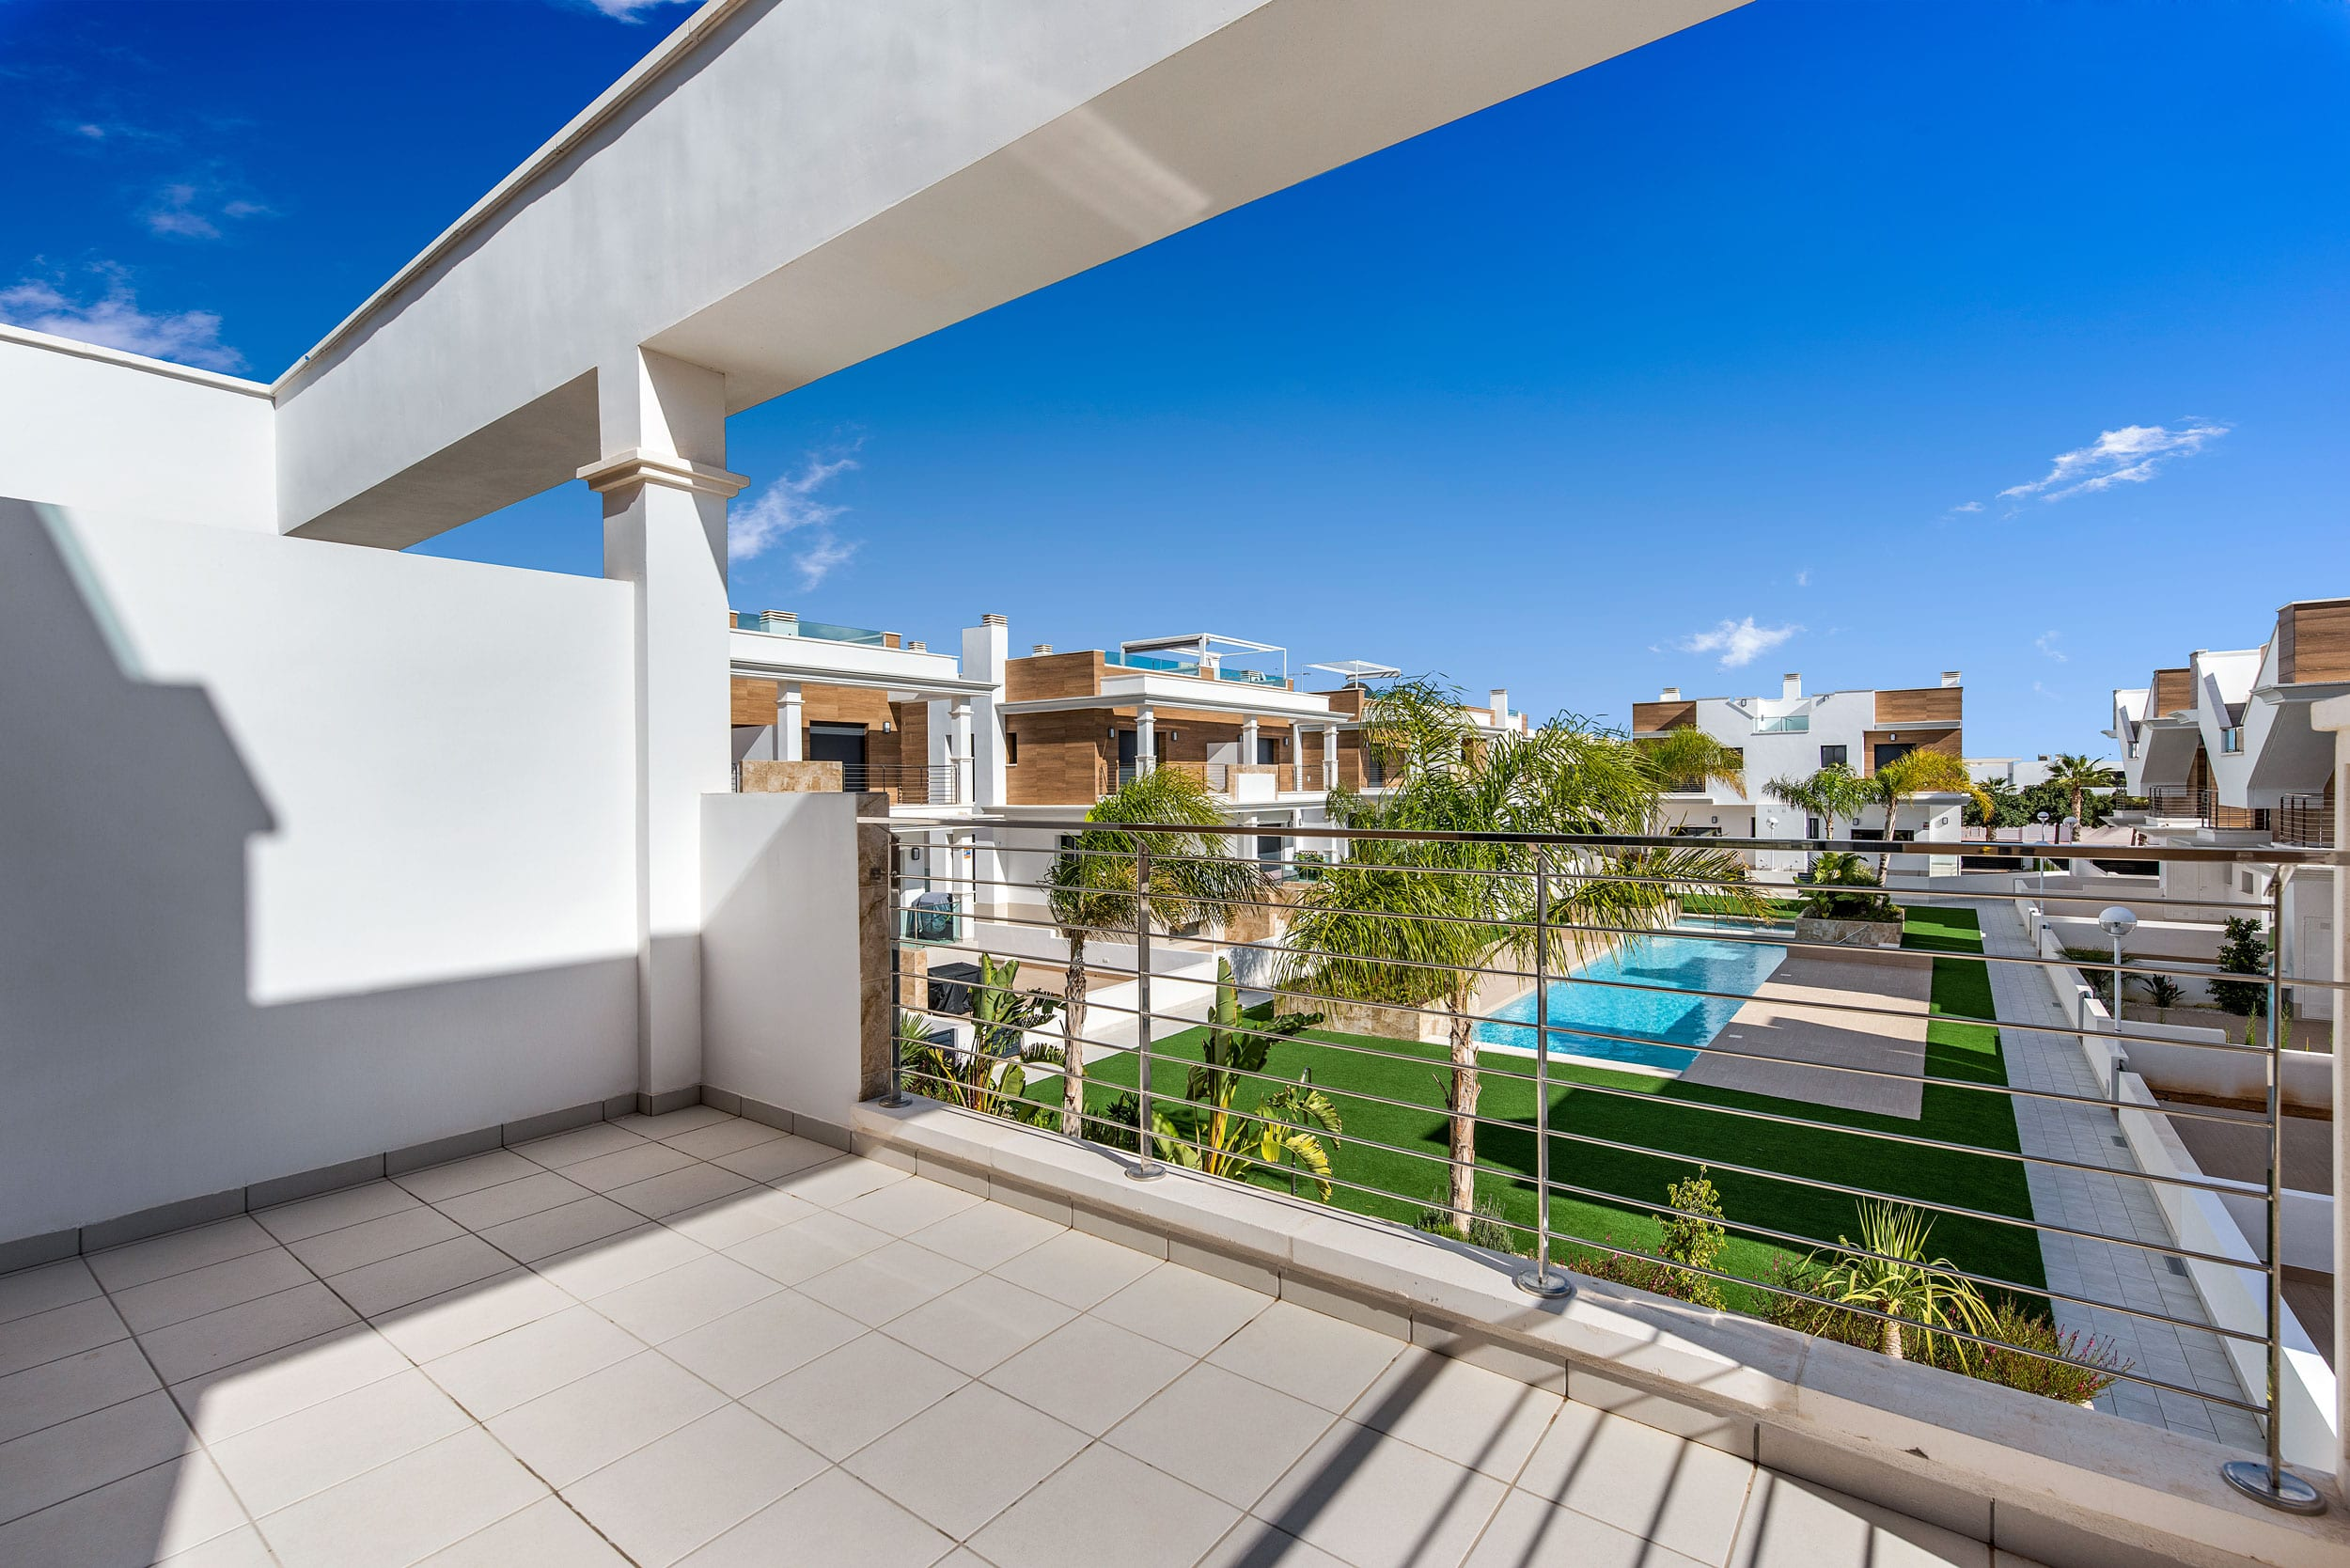 New modern townhouse duplex for sale Ciudad Quesada Alicante Costa Blanca